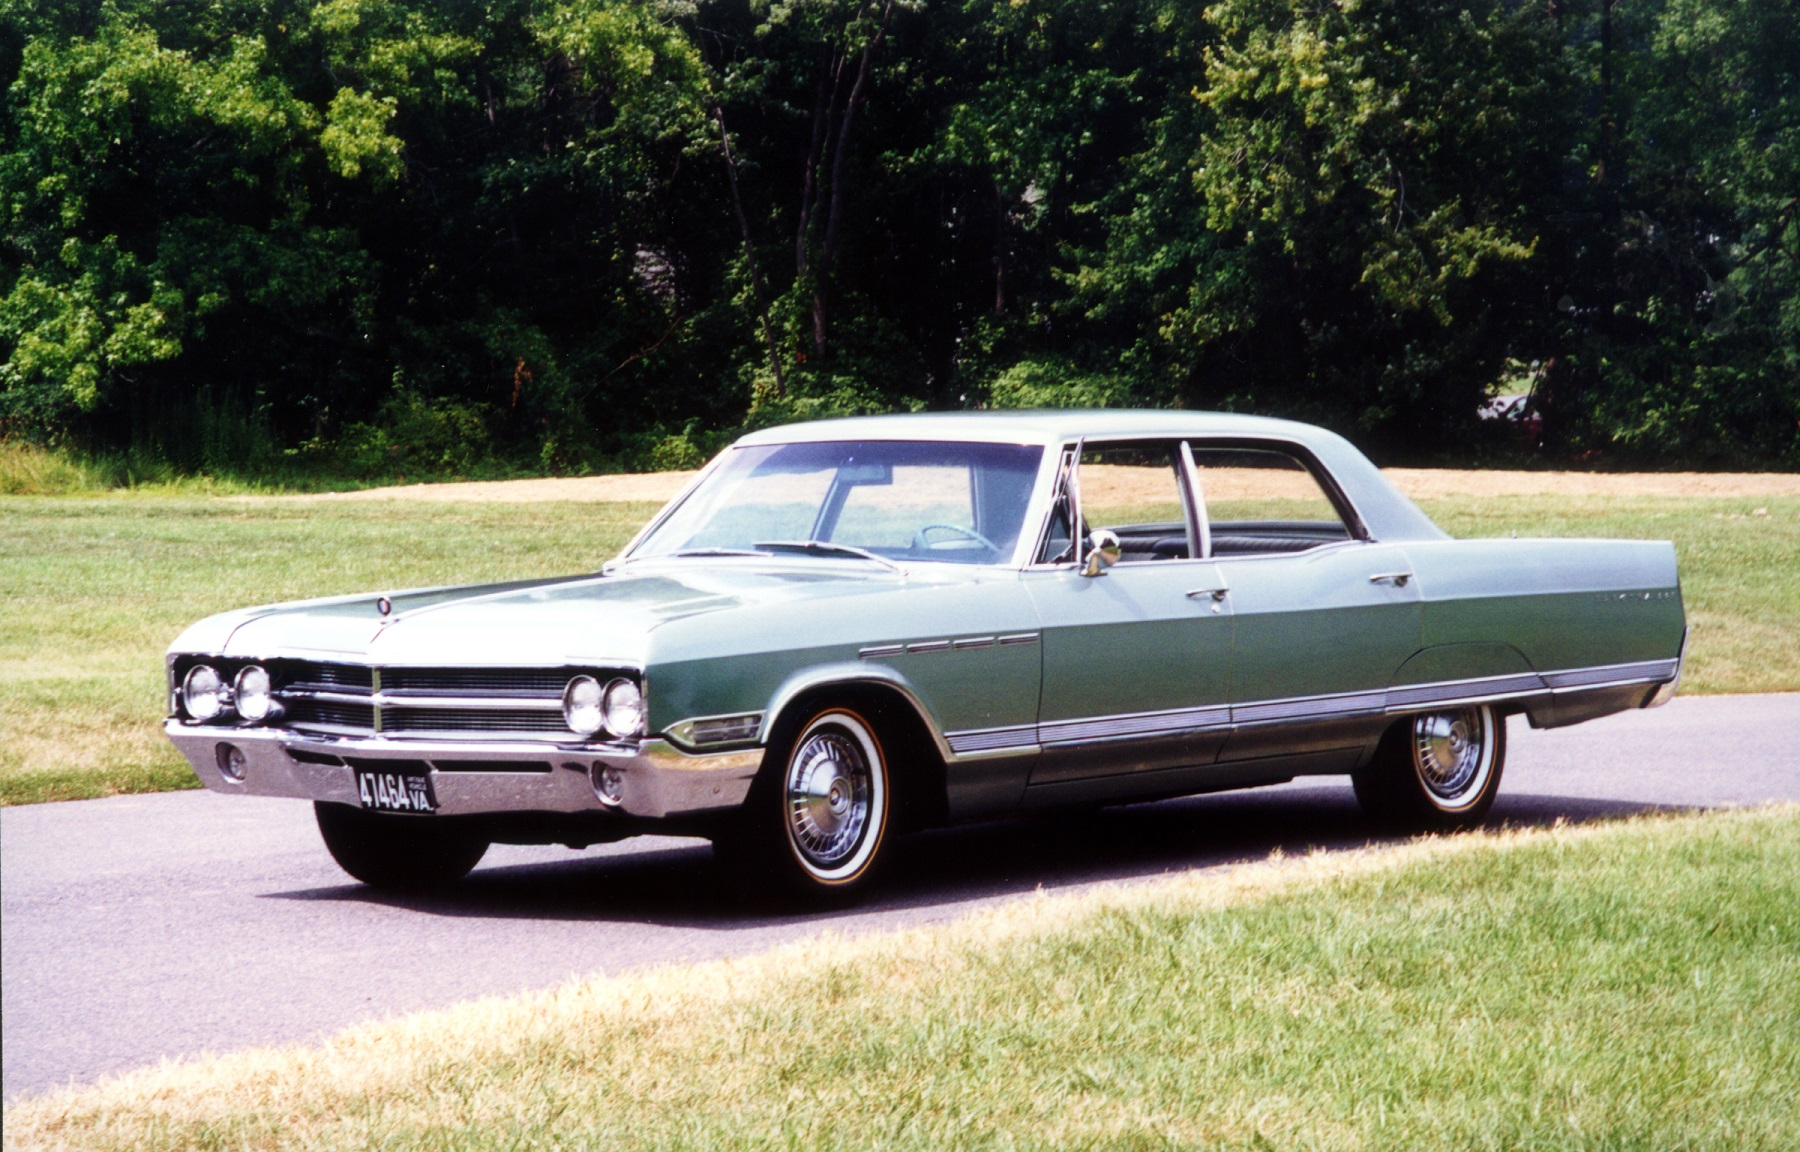 They looked at numerous cars before narrowing the search to a 1965 thunderbird and the 1965 buick electra 225